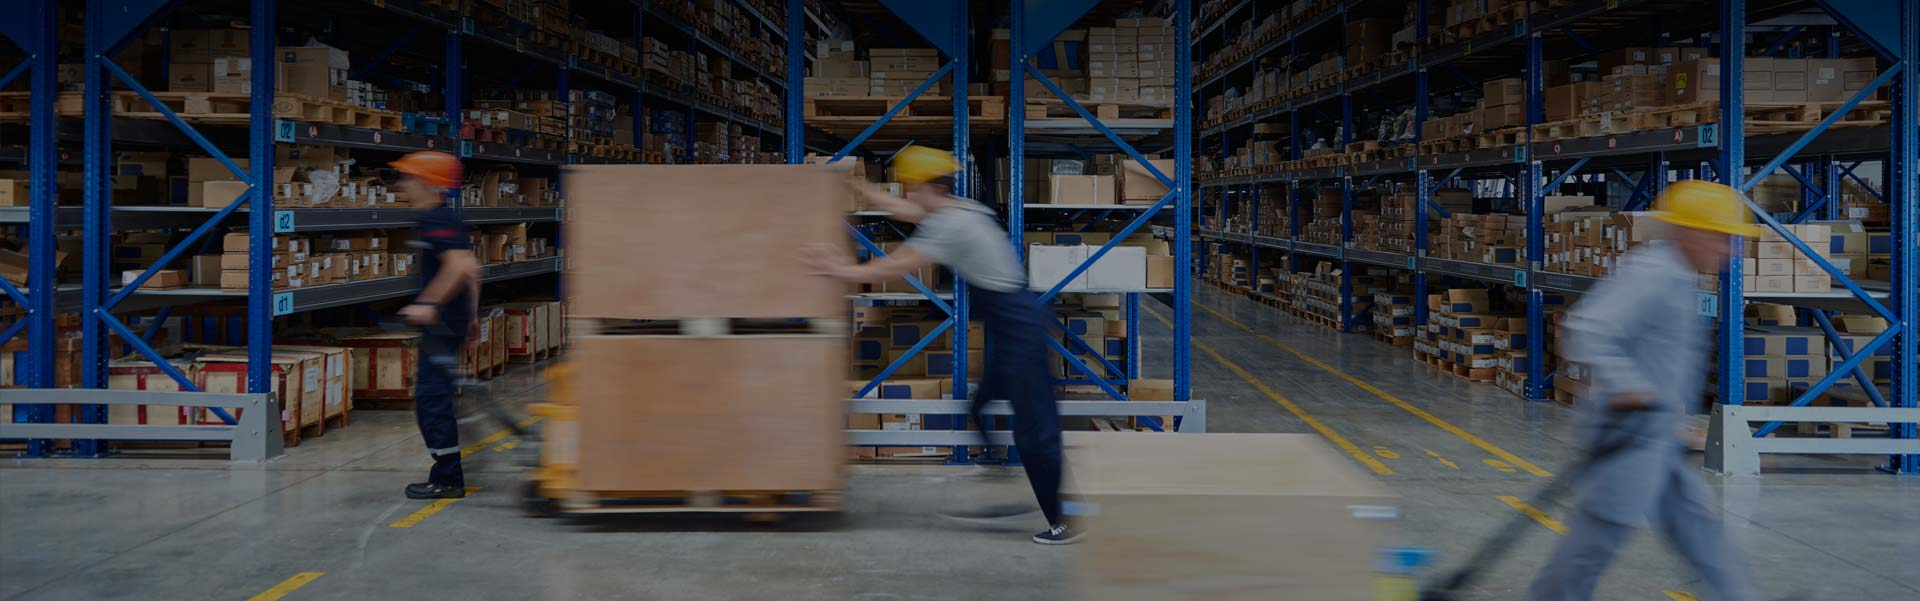 Supply Chain Optimization: Choosing the Right Location for